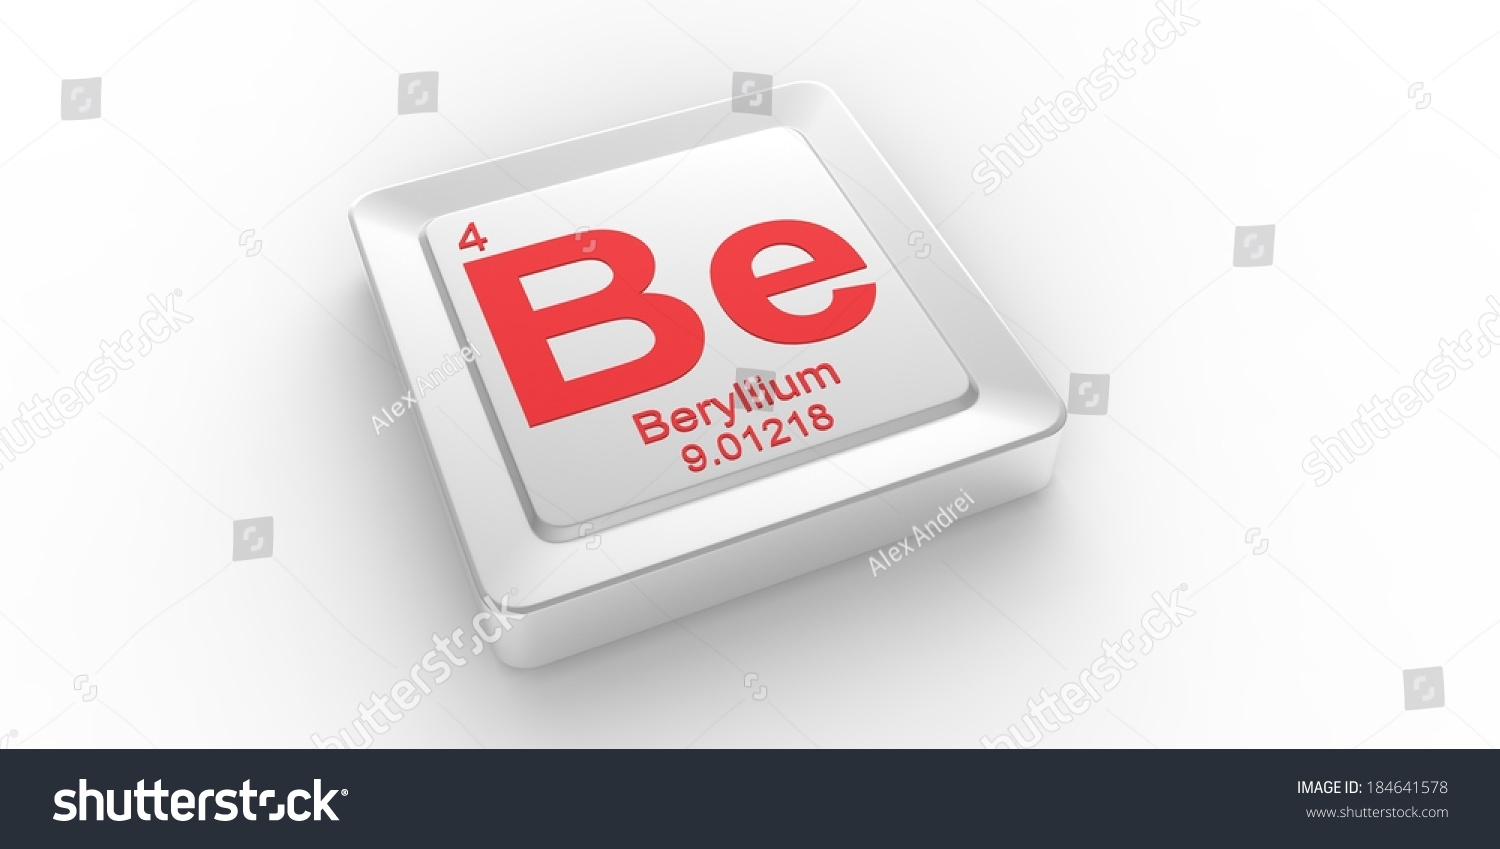 Be symbol 4 material beryllium chemical stock illustration be symbol 4 material for beryllium chemical element of the periodic table buycottarizona Image collections